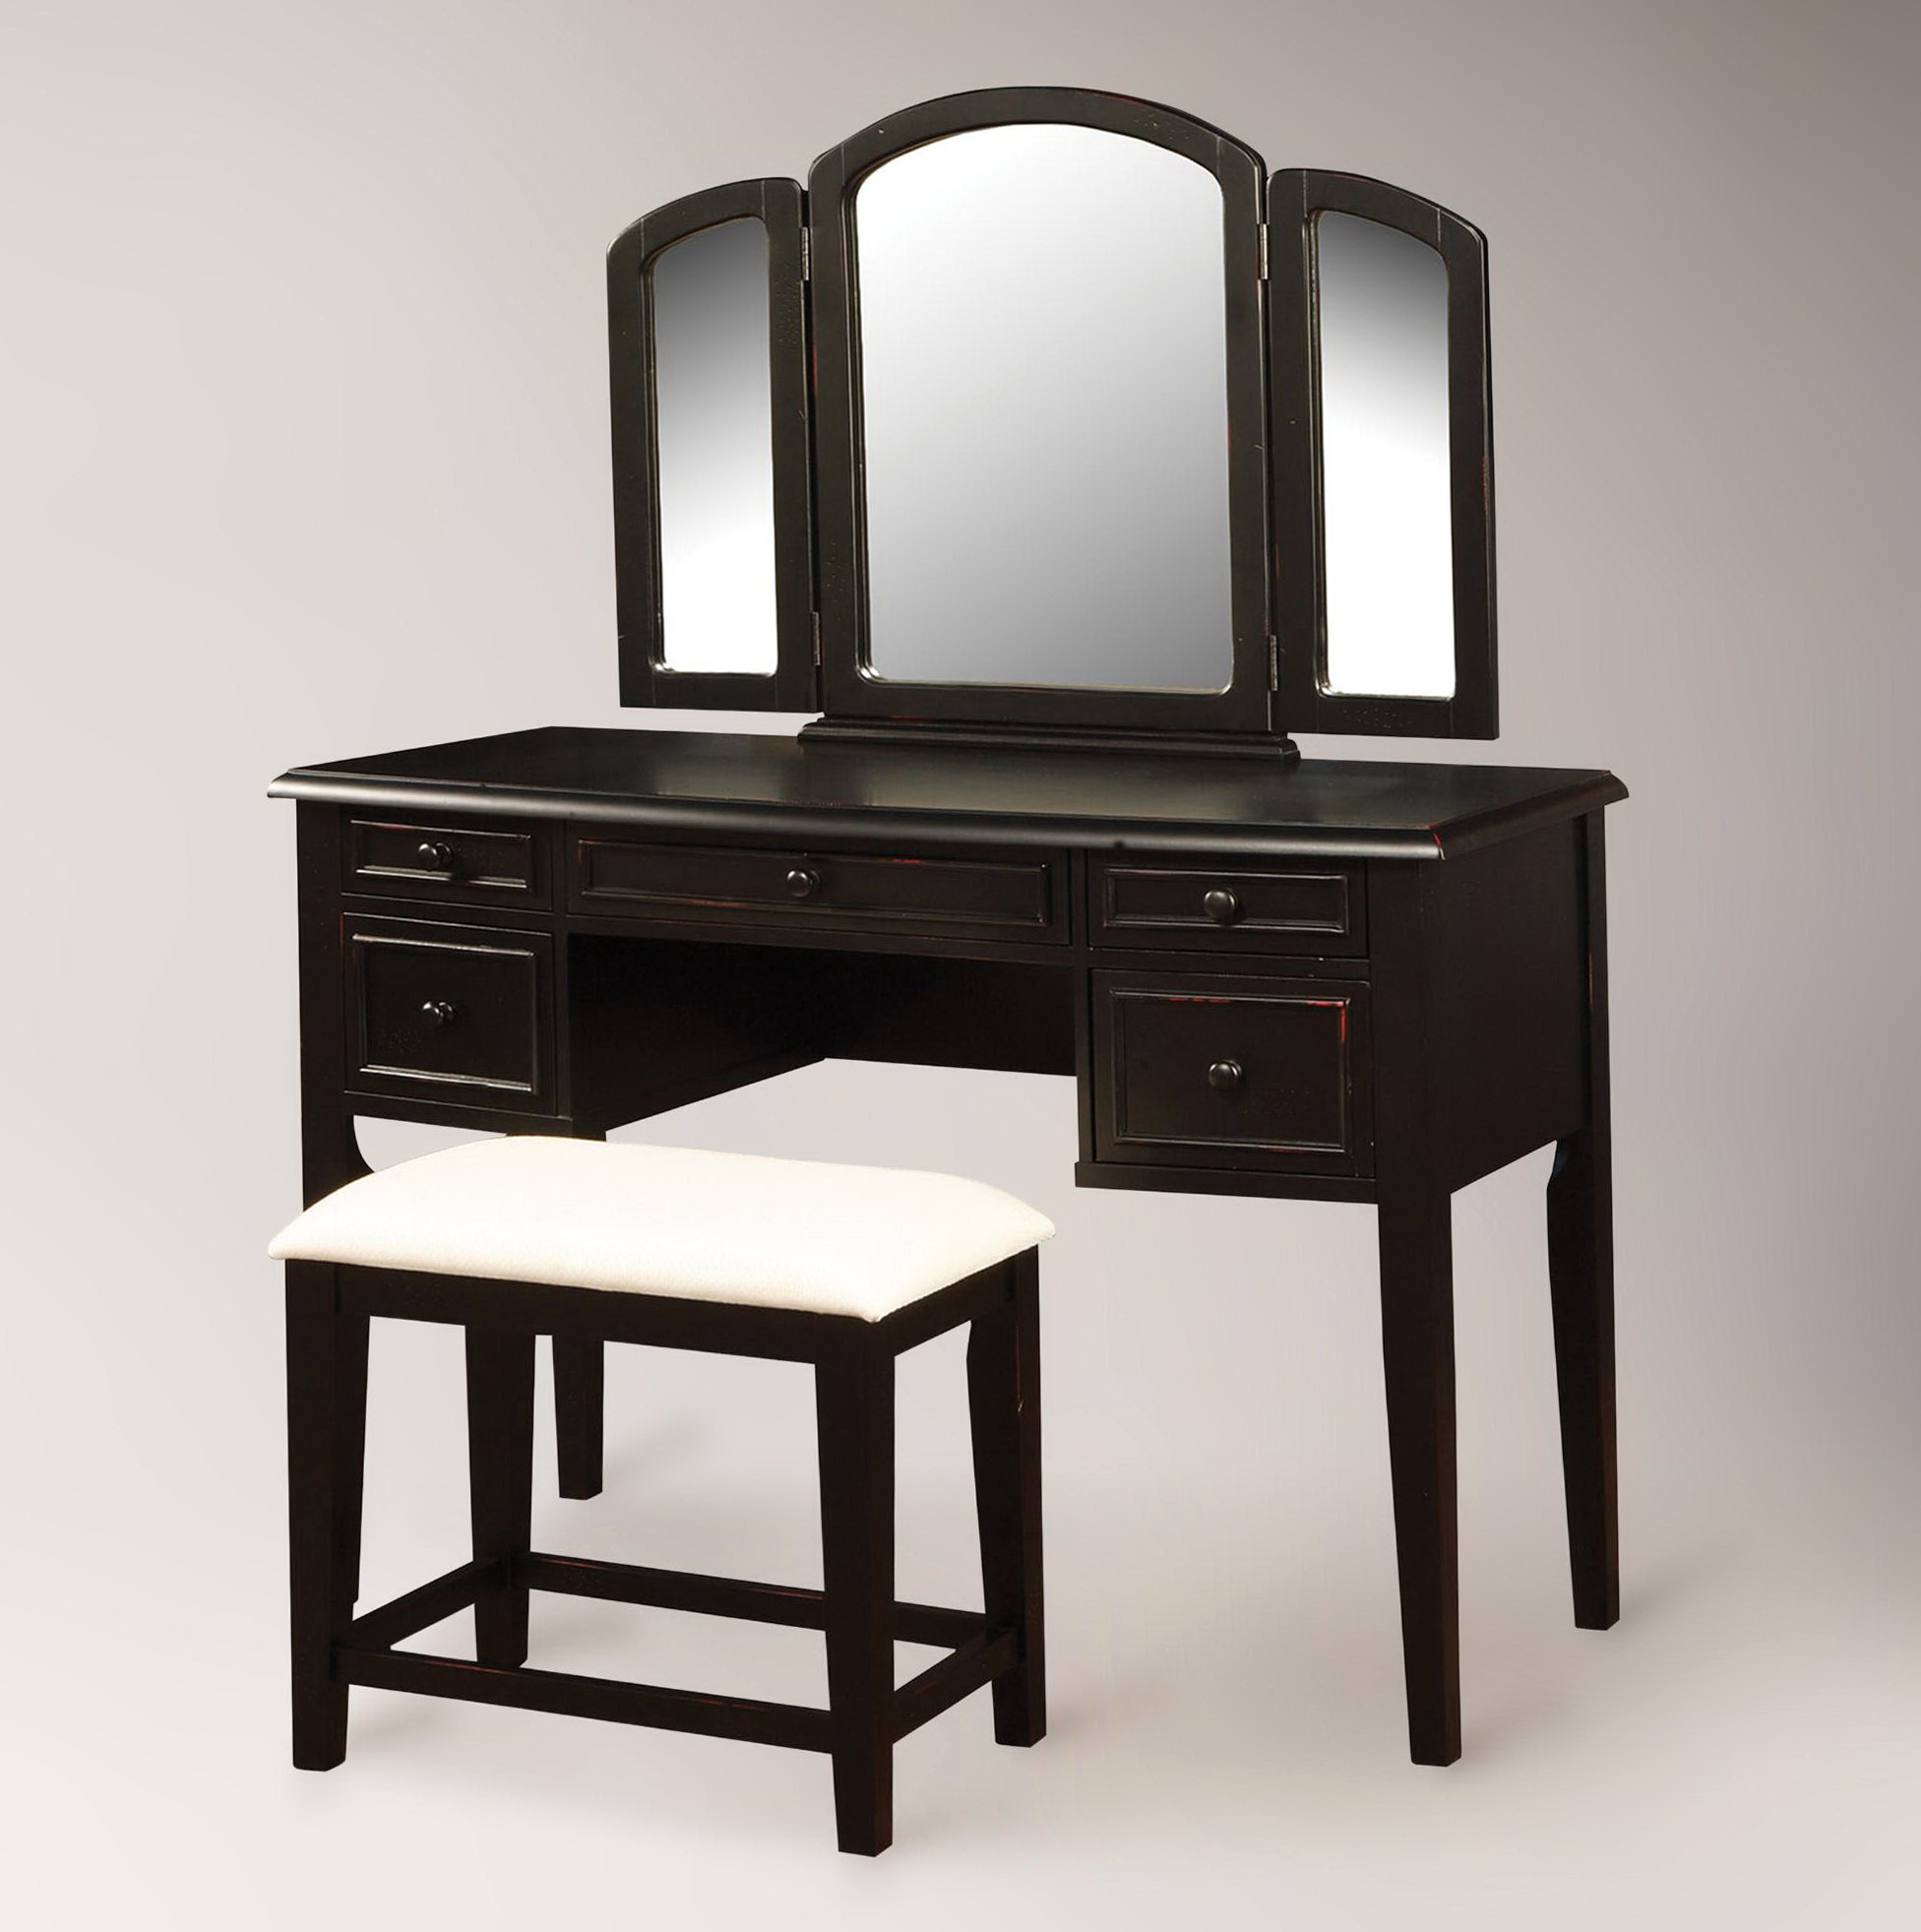 Black vanity dresser with mirror bestdressers 2017 for Black makeup table with mirror